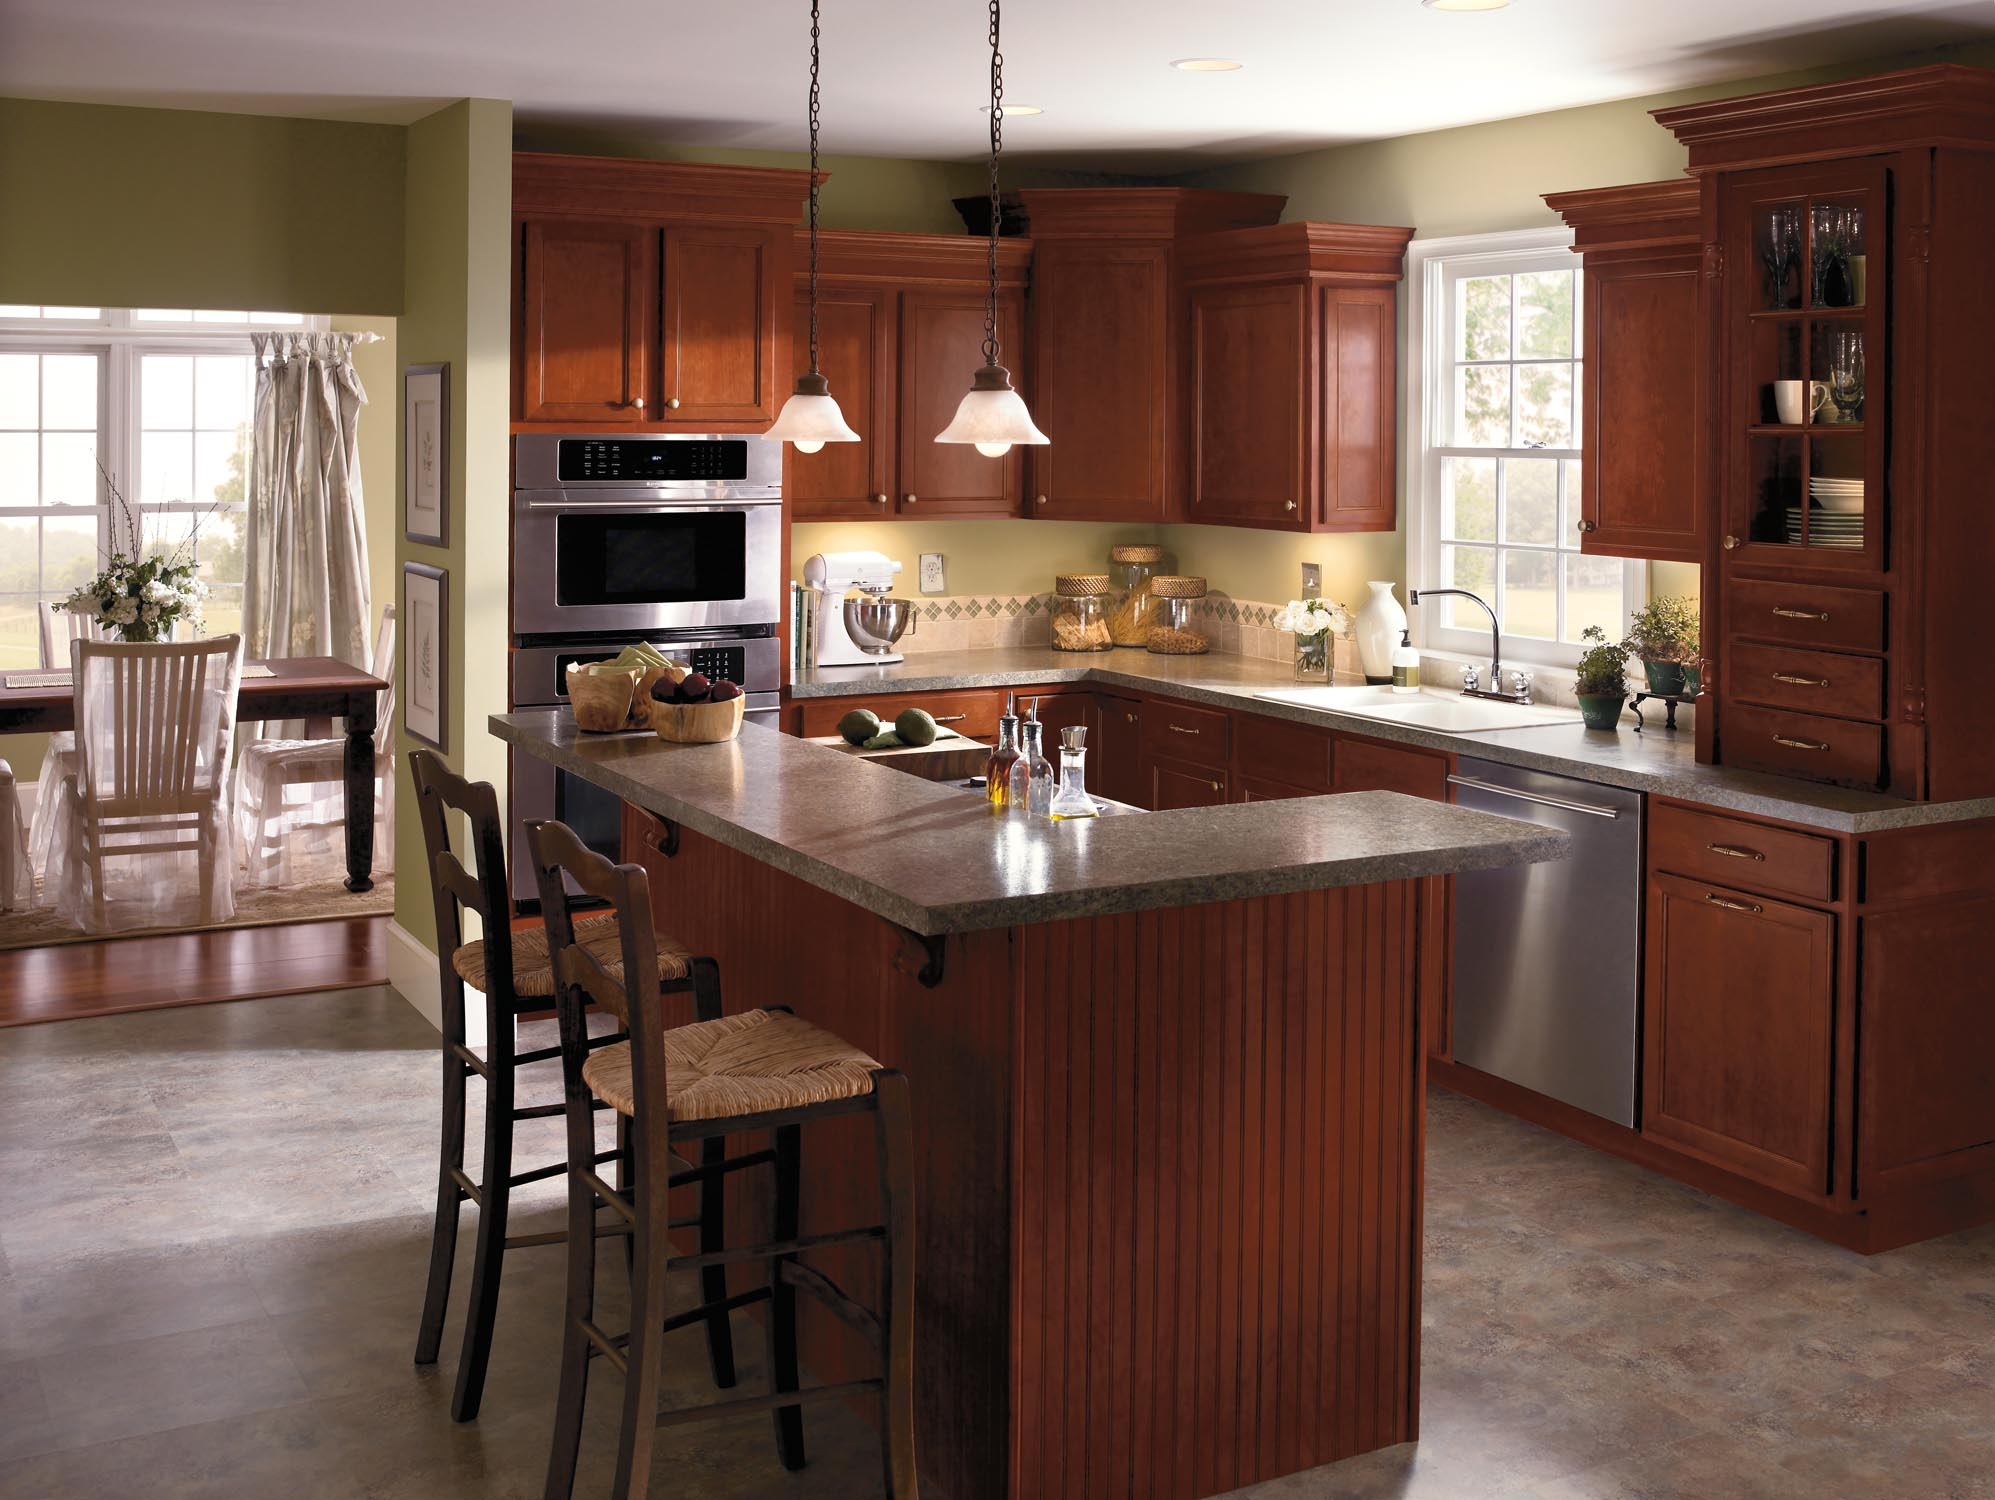 Kitchen Sinks and Countertops Melbourne Florida Hammond Kitchen and Bath Brevard